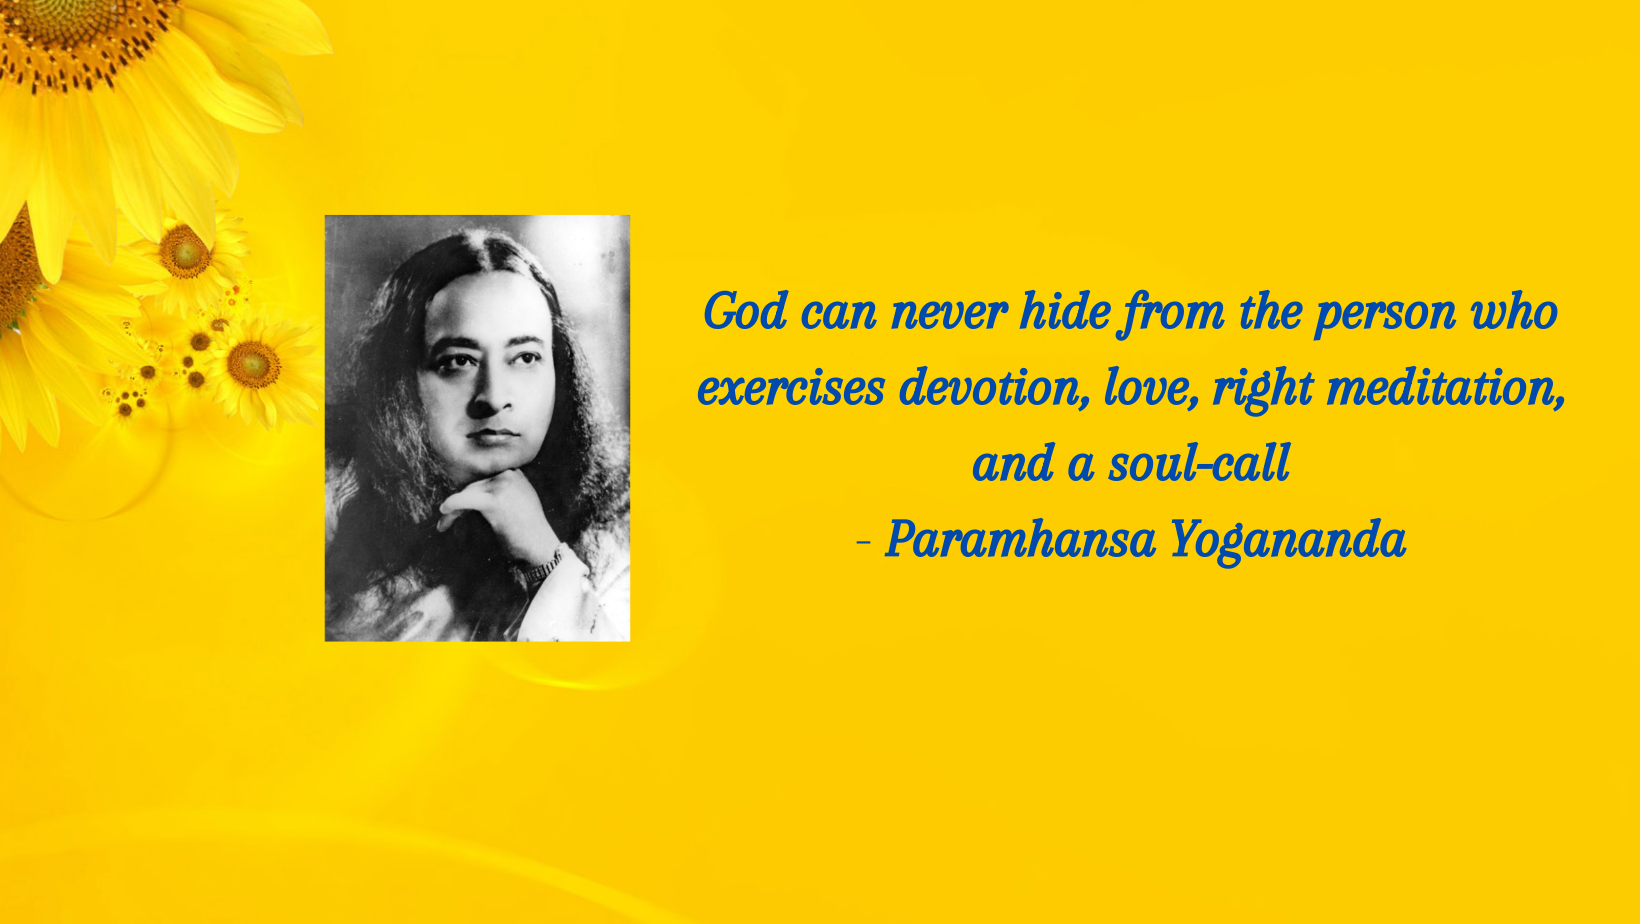 God can never hide from the person who exercises devotion, love, right meditation, and a soul-call. Paramhansa Yogananda (2)